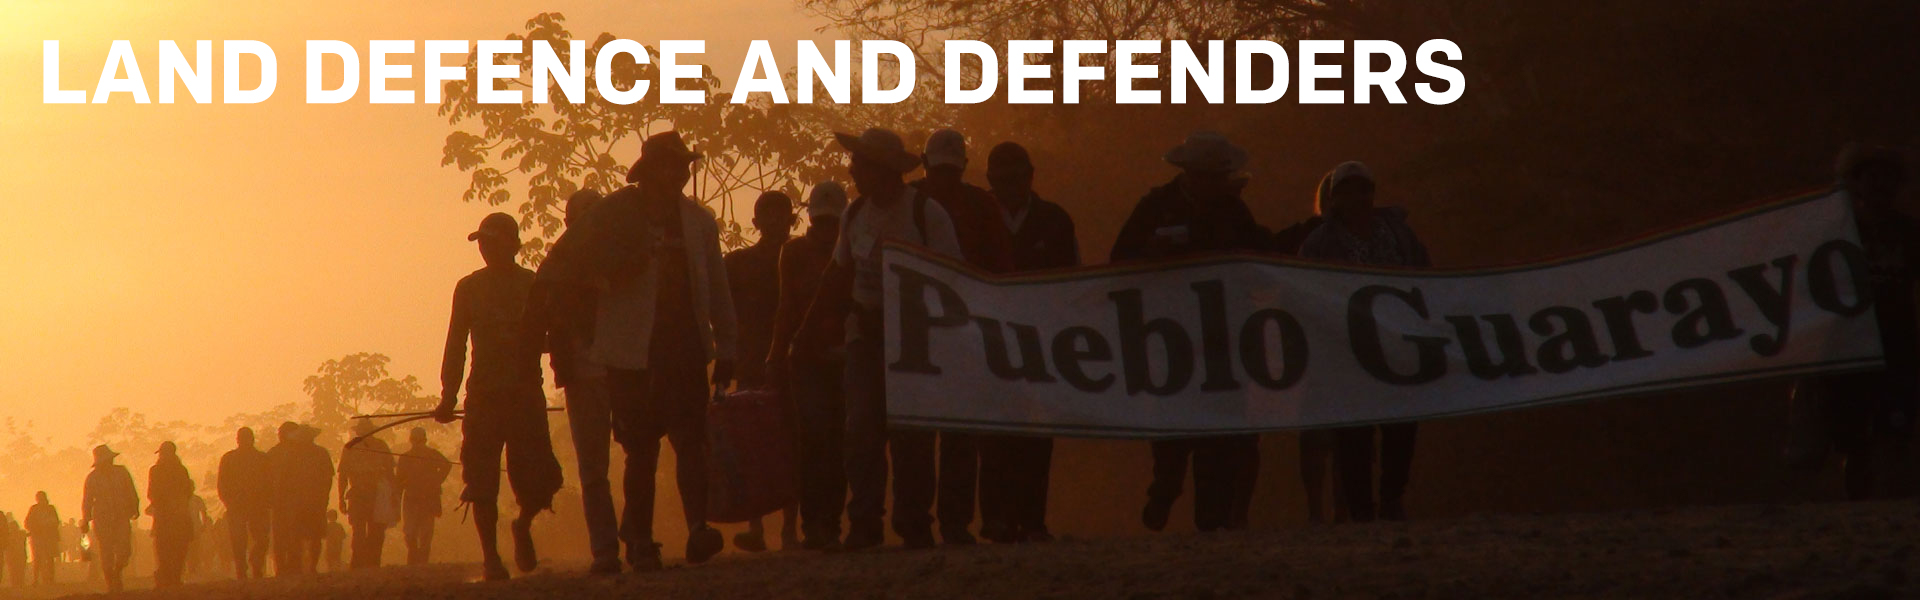 Land Defence and Defenders